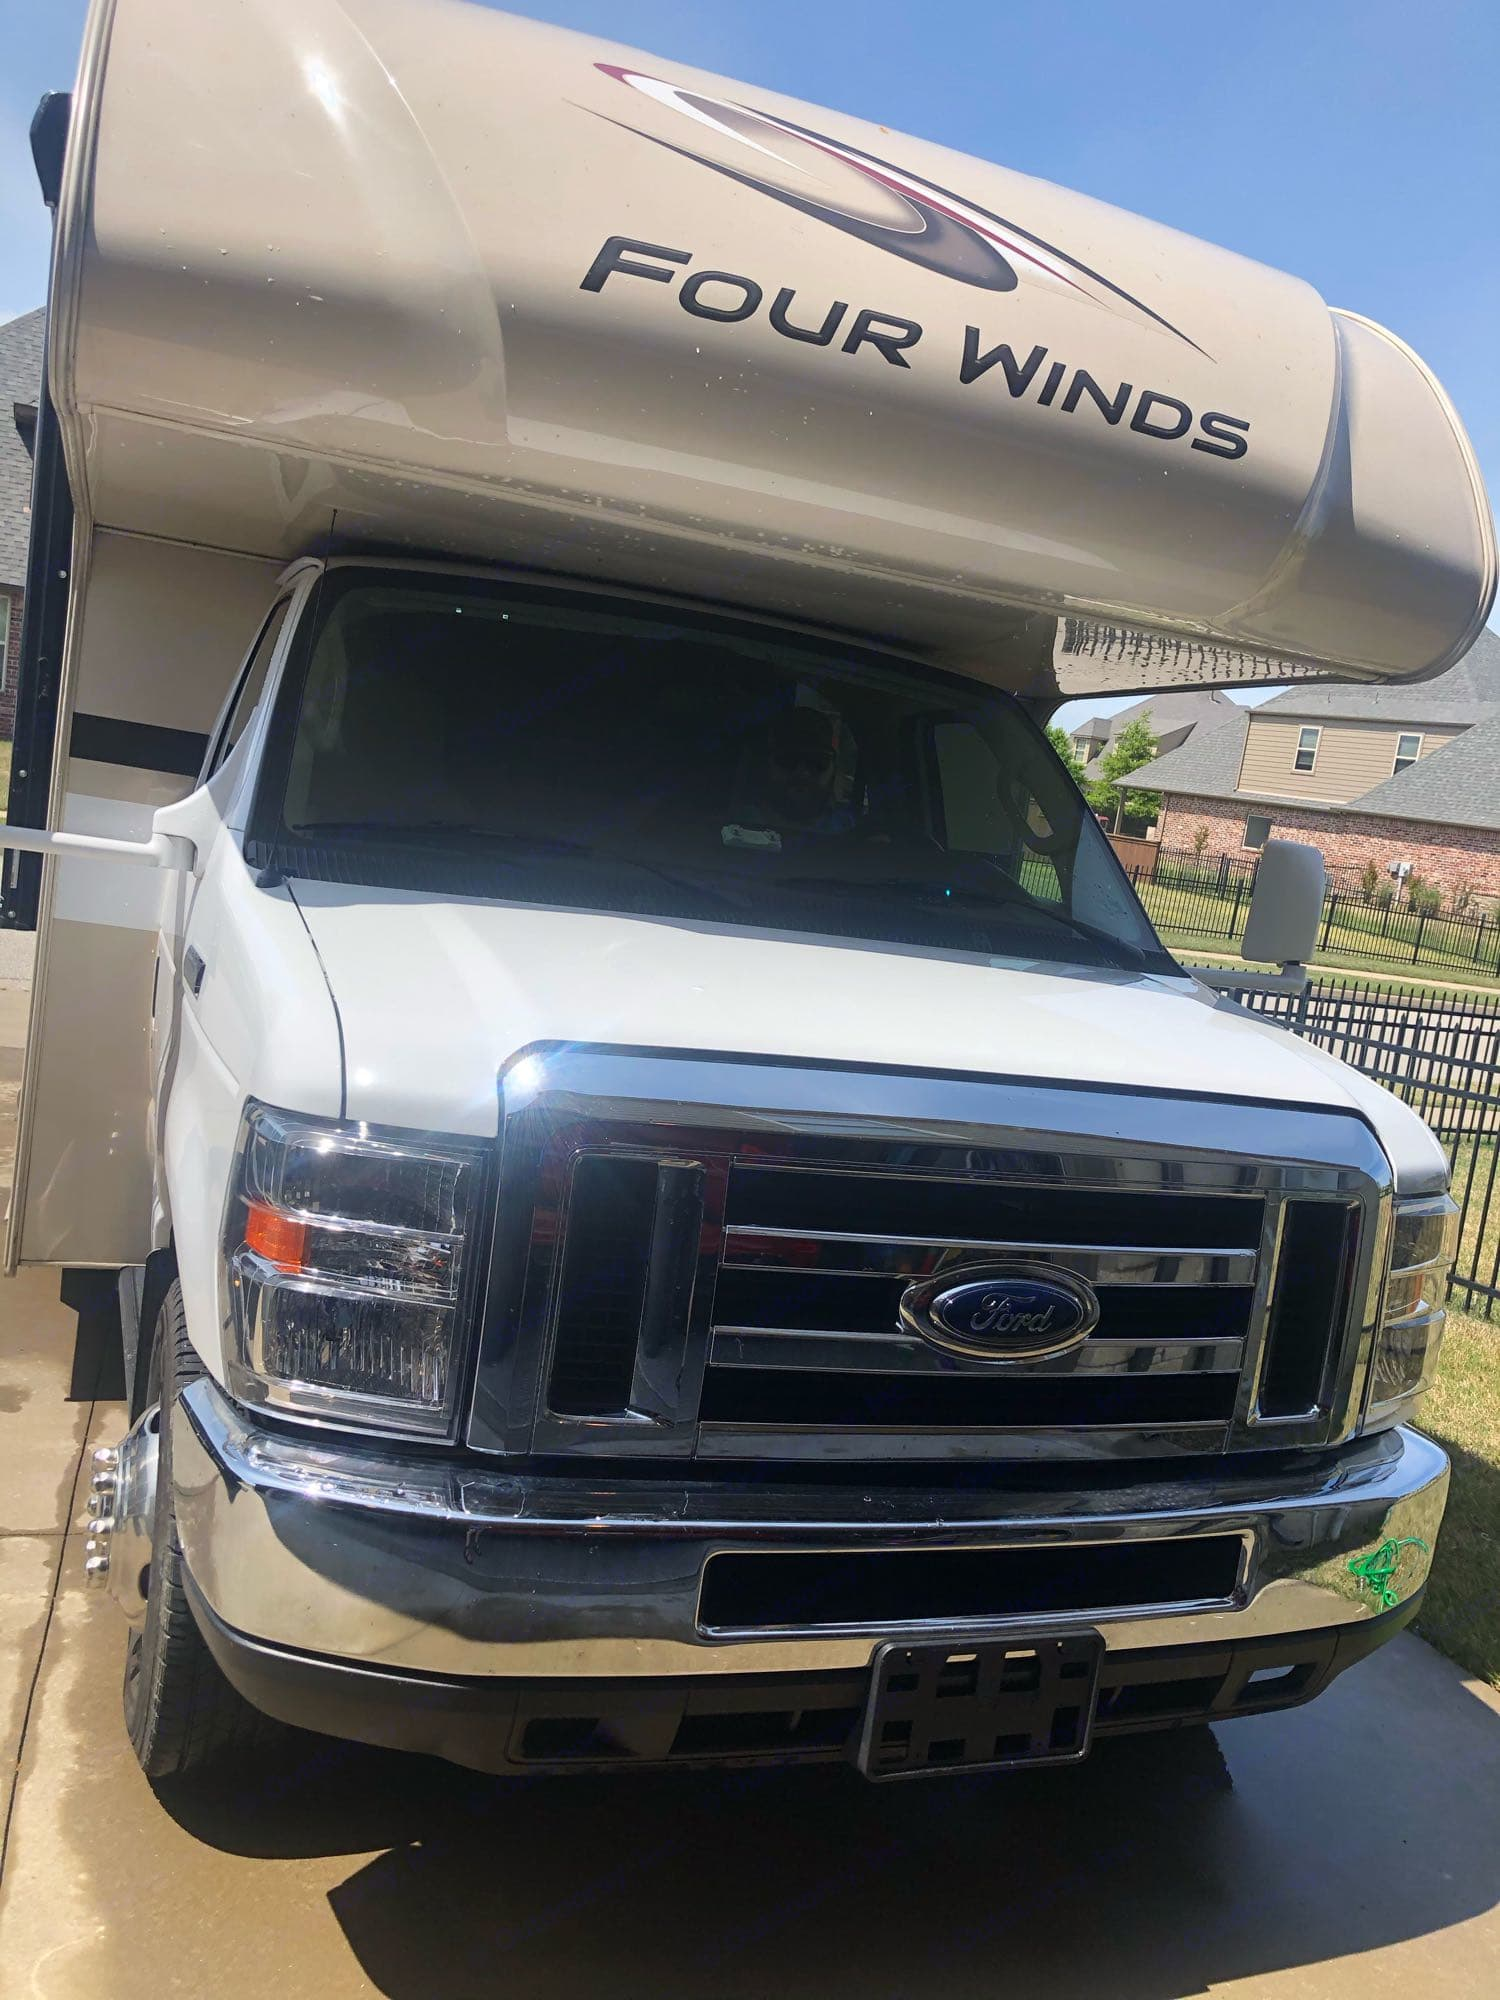 Ford Truck. Automatic. Adjustable mirrors. OK toll pass included. Thor Motor Coach Four Winds 2019